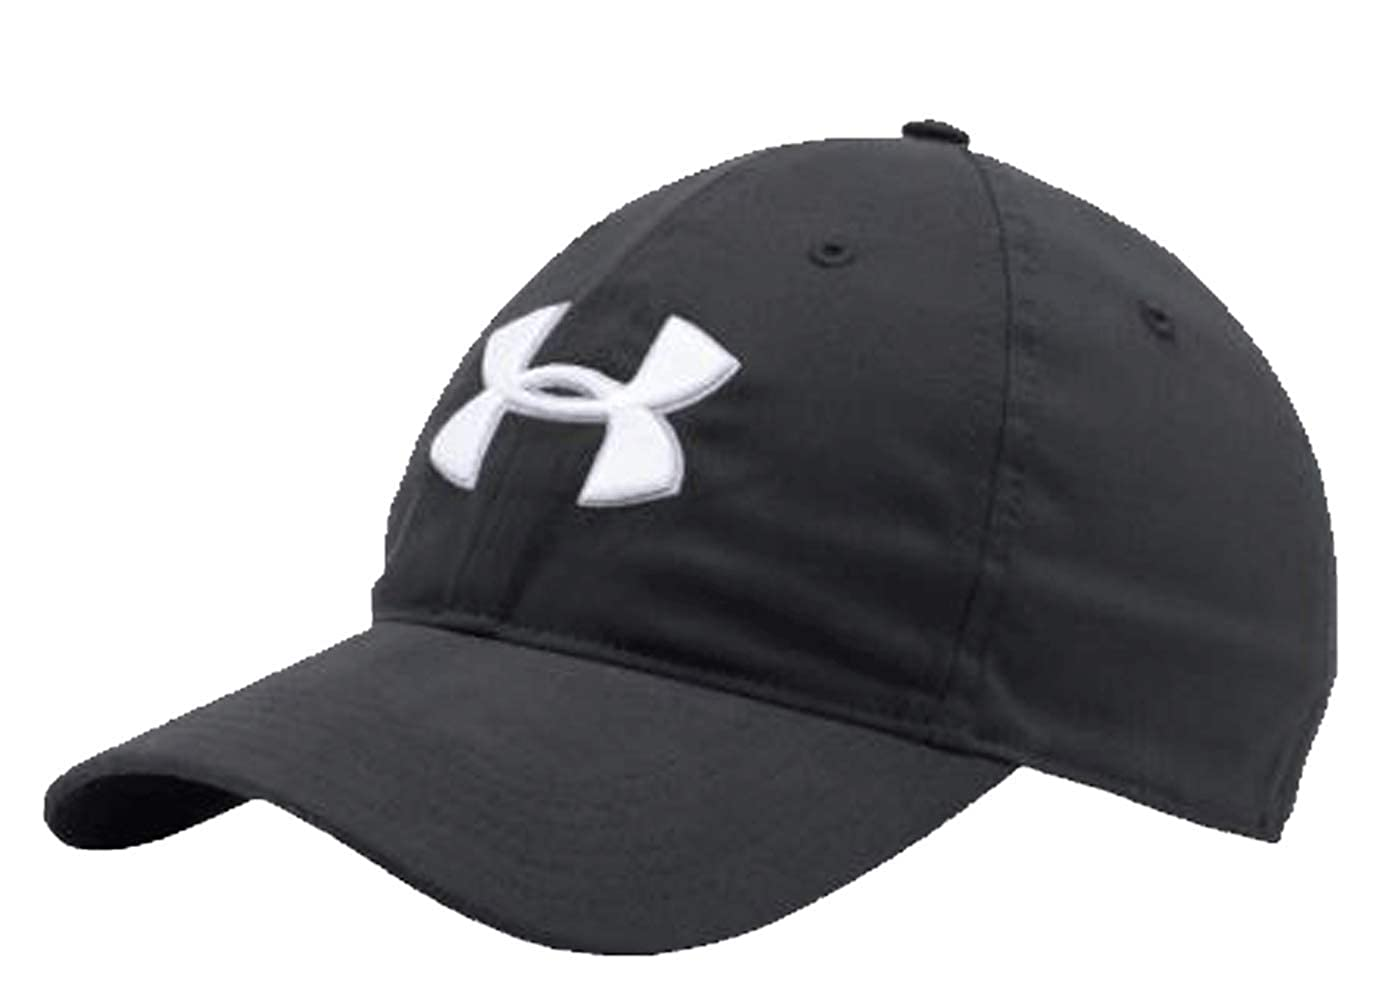 reputable site 974f1 e0e69 Under Armour Men s Core Chino Golf Hat OSFA Black White Cap Strap Back  1296629 at Amazon Men s Clothing store